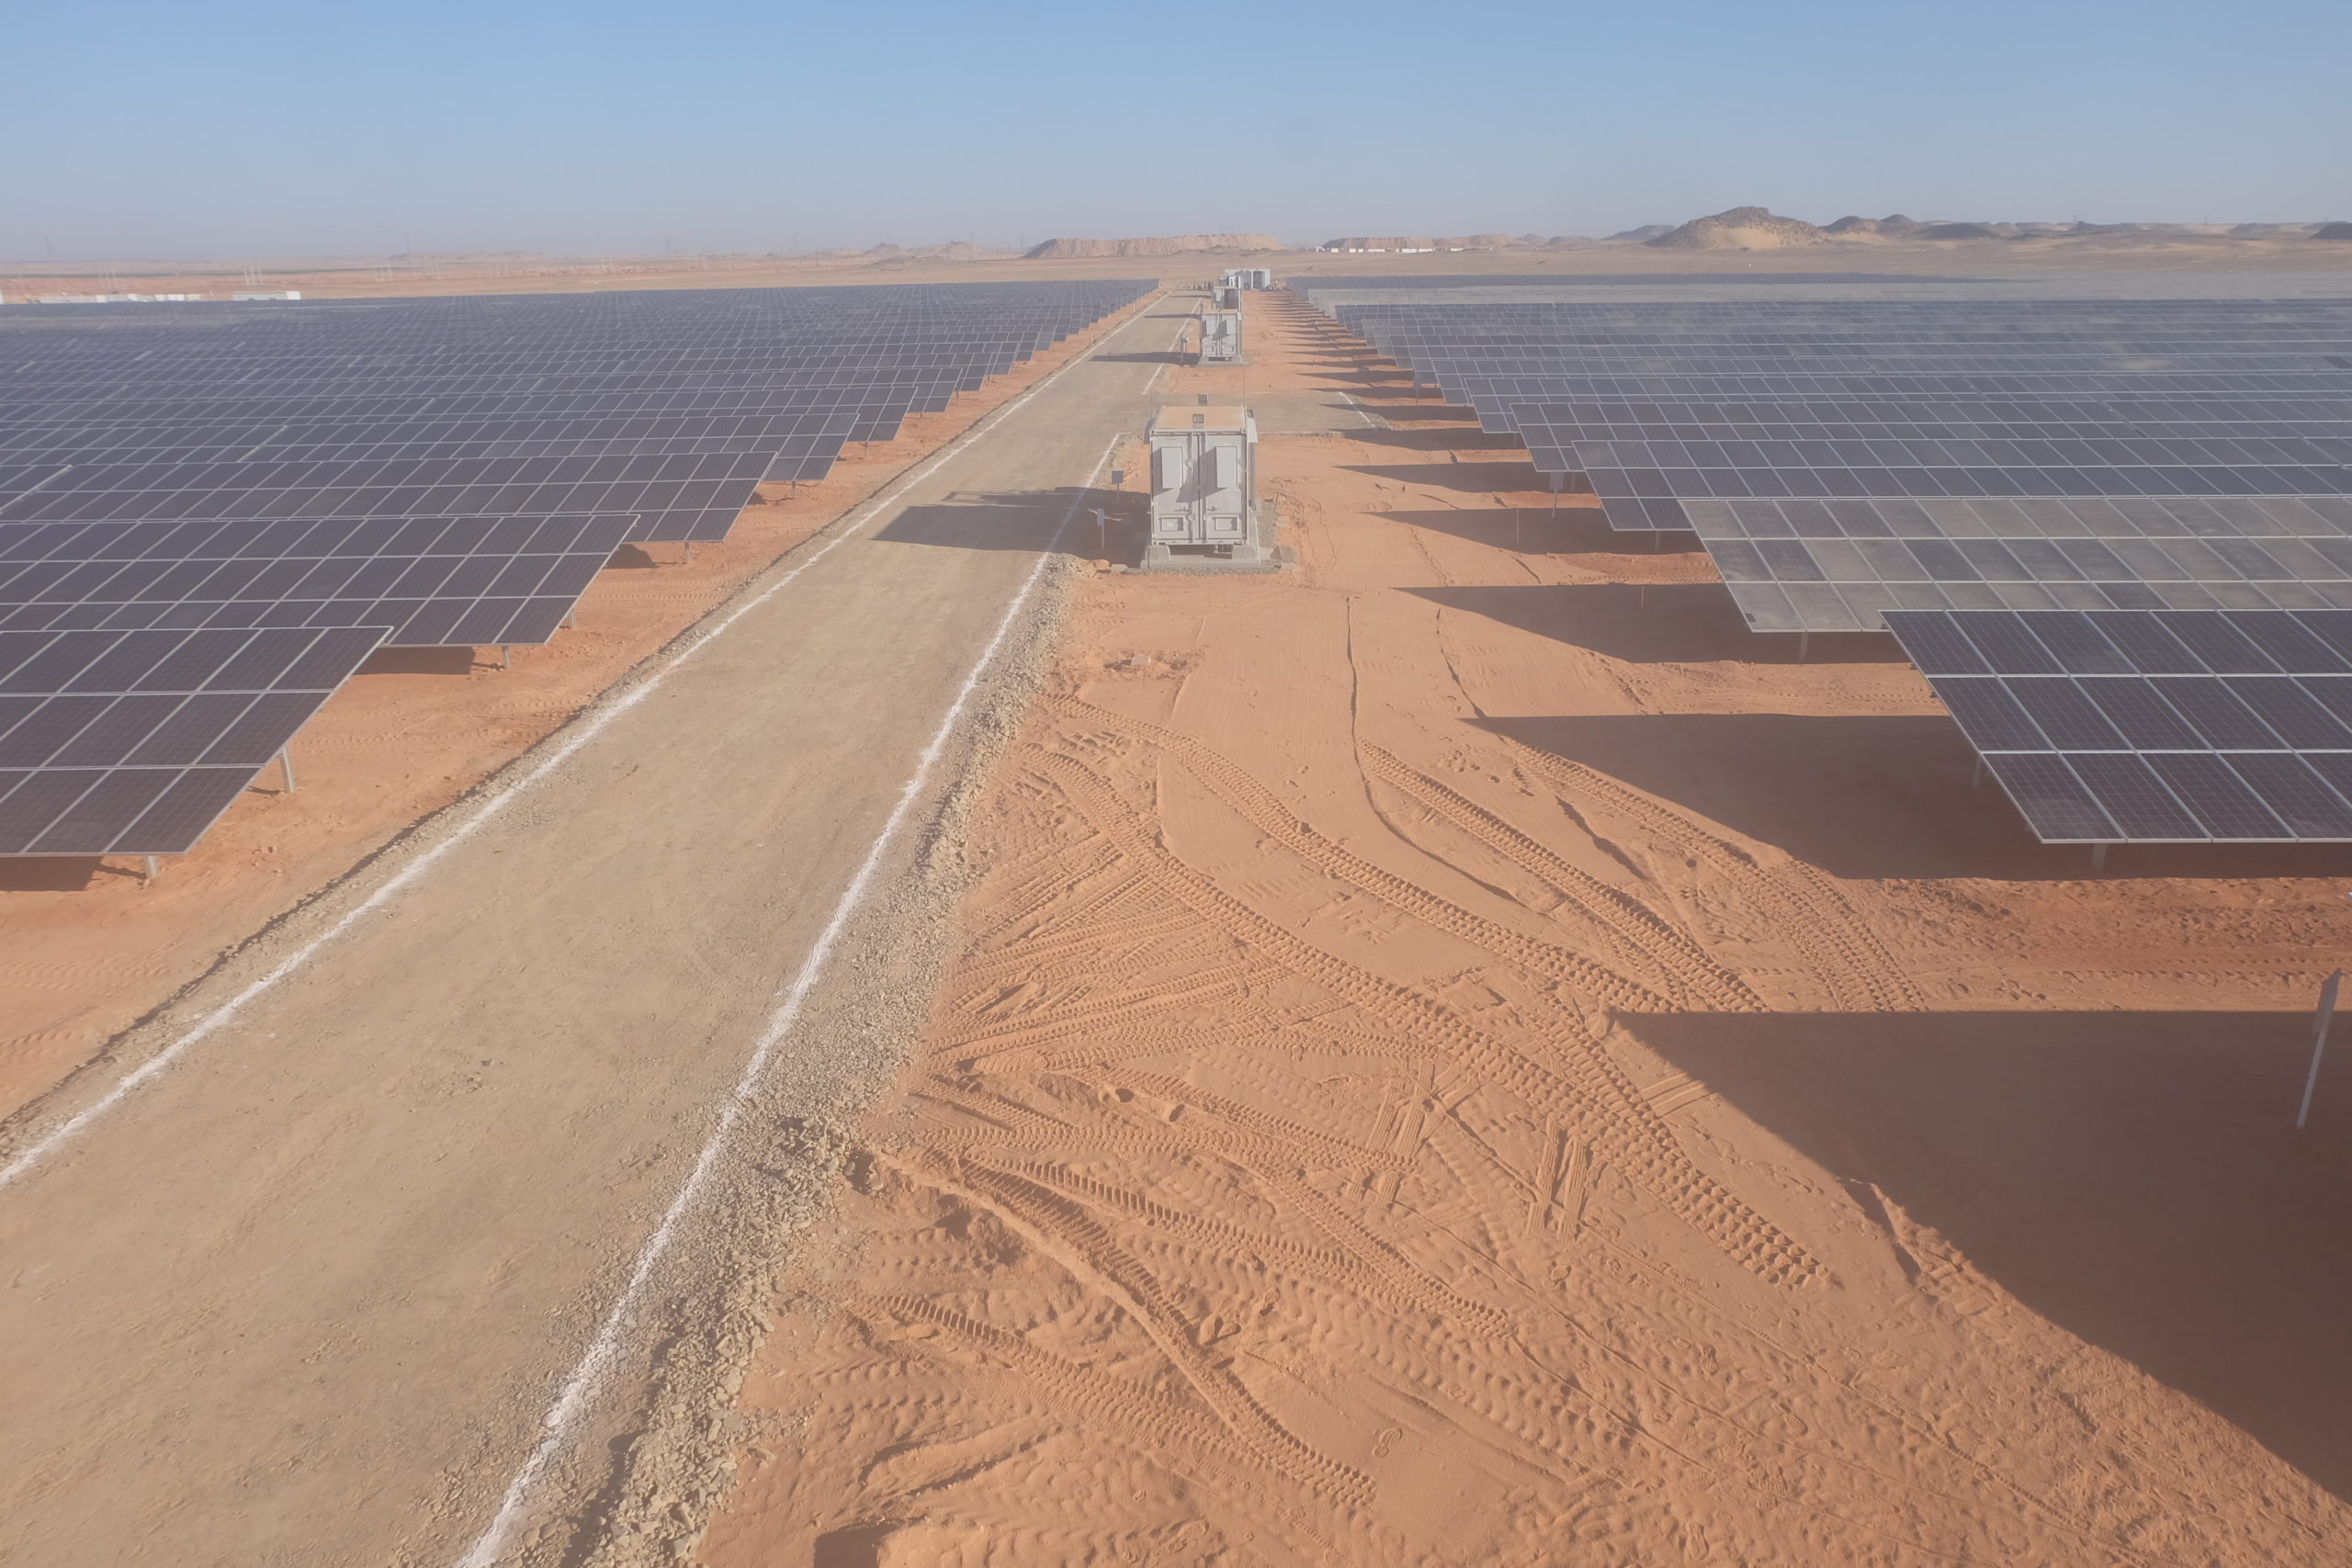 Commissioned in two phases, the installation features ABB's PVS800-IS inverter stations. Image: ABB